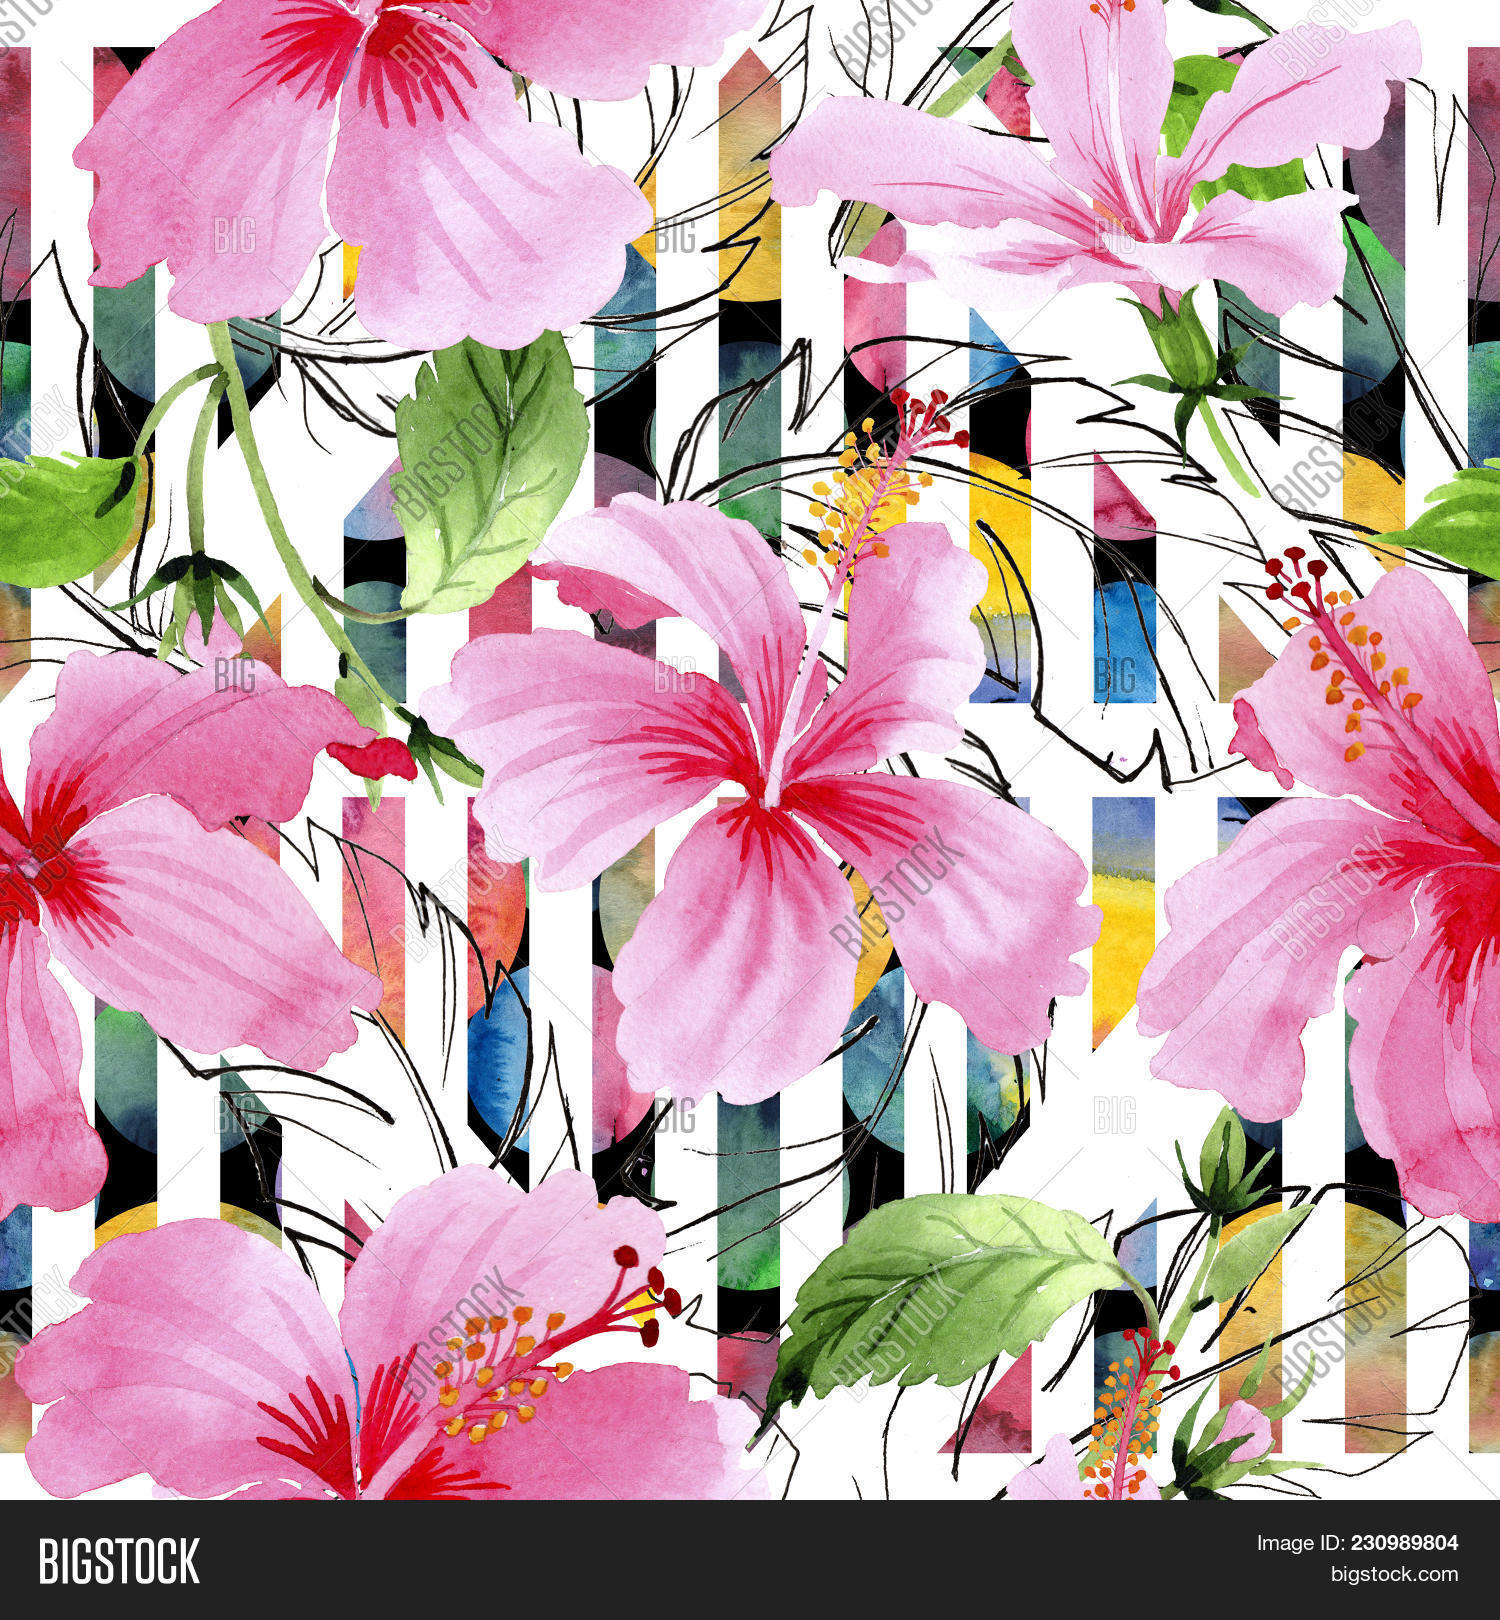 Wildflower hibiscus image photo free trial bigstock wildflower hibiscus pink flower pattern in a watercolor style full name of the plant izmirmasajfo